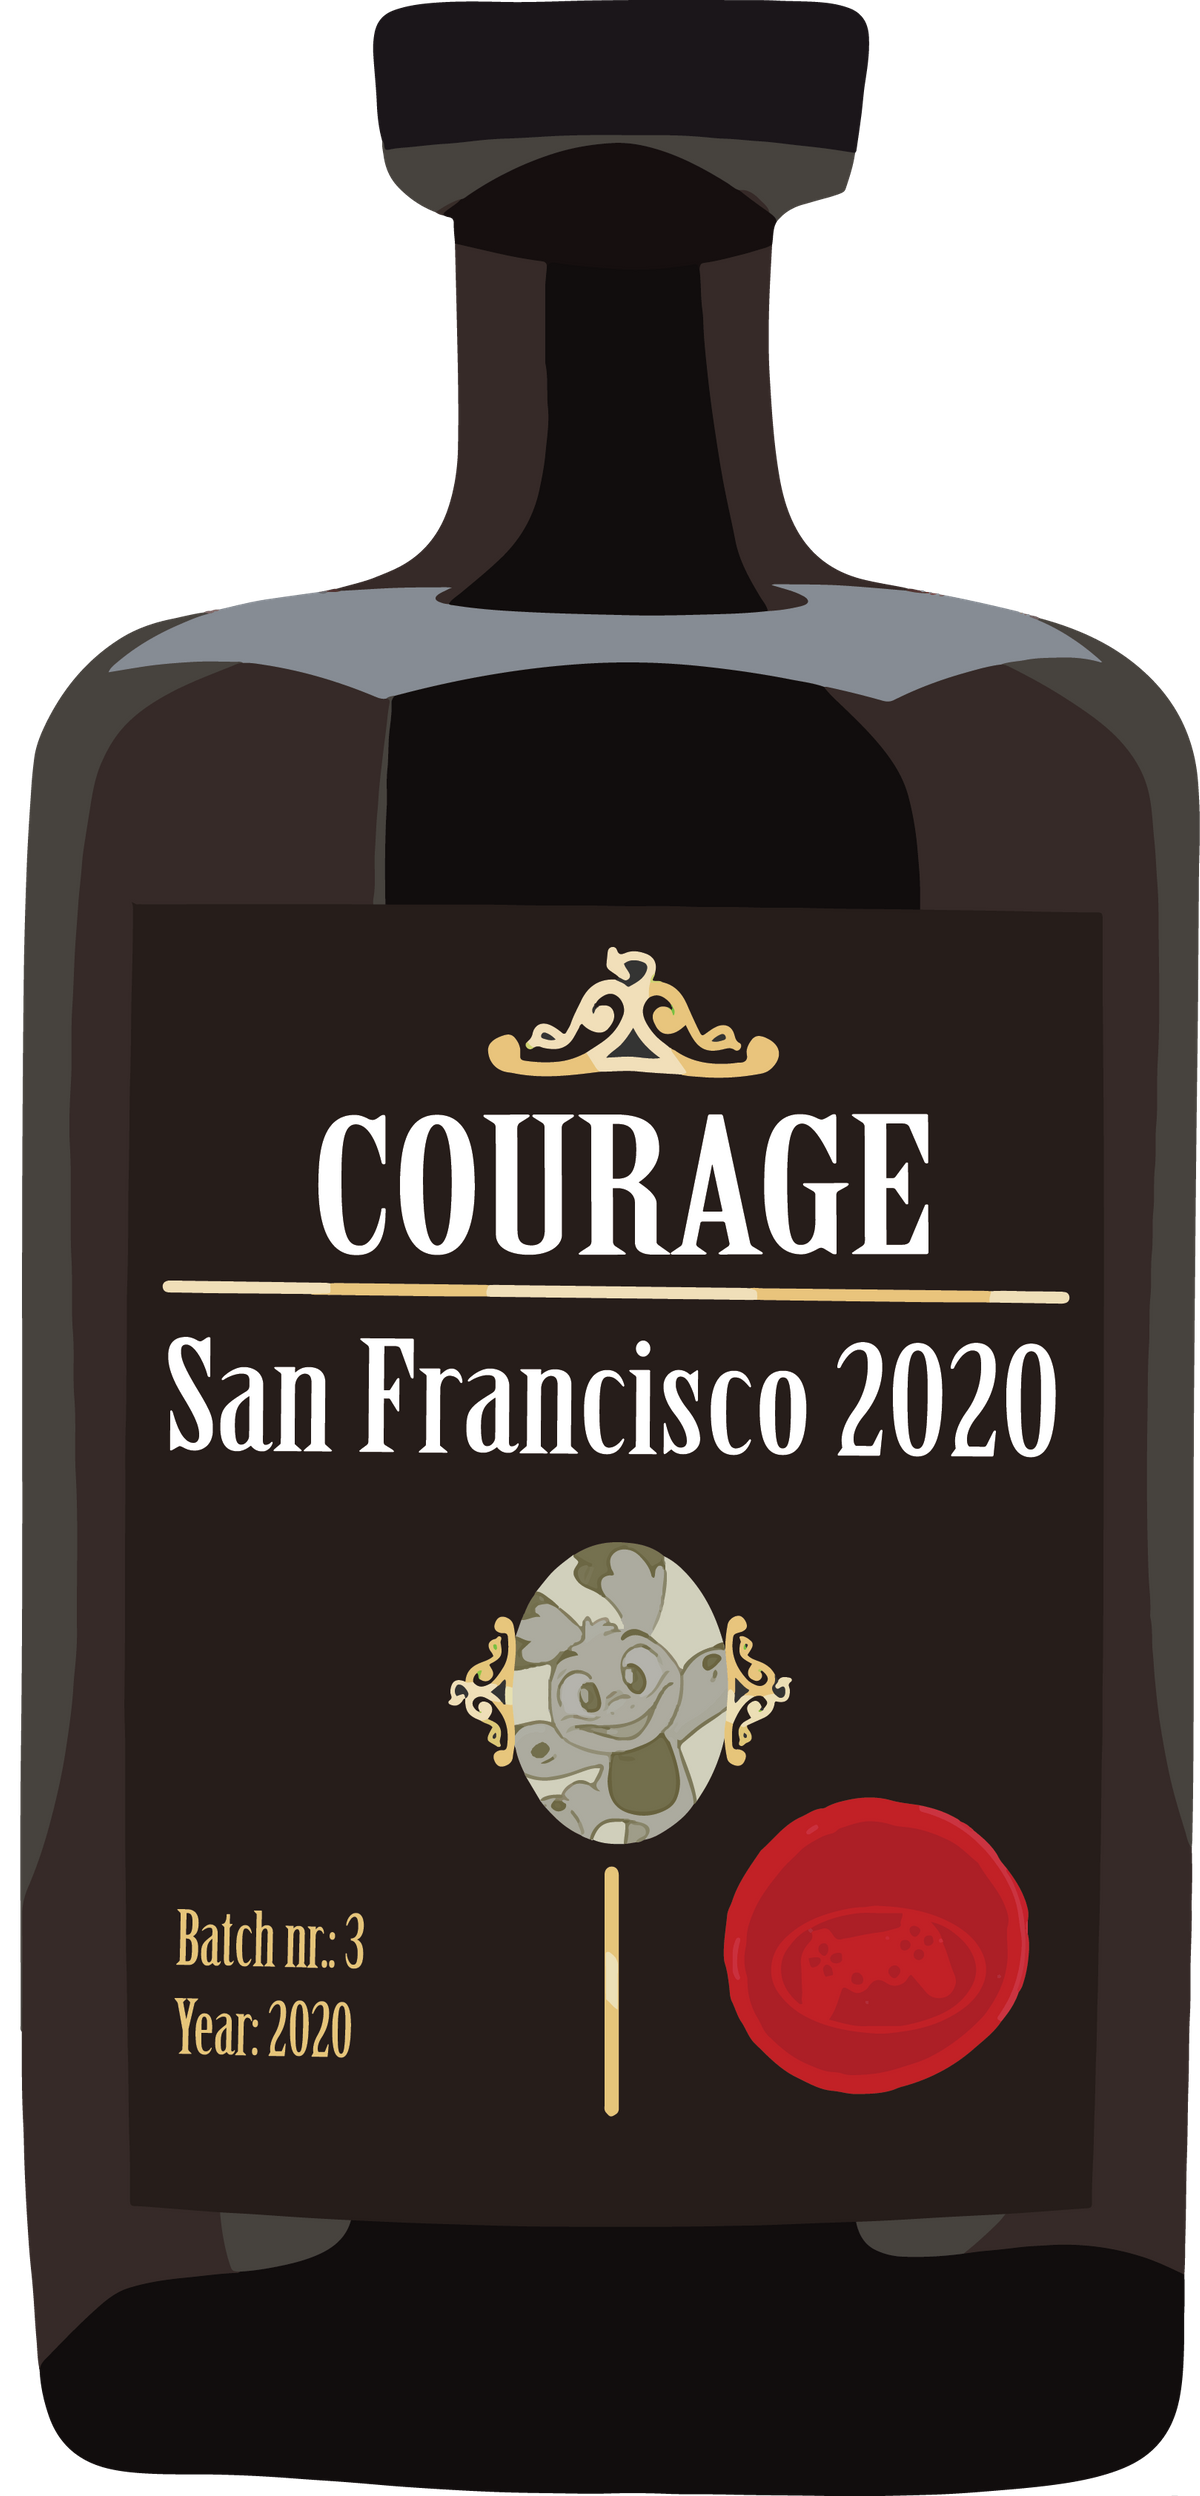 Courage San Francisco 2020 - PreMixer for GDC at The Great